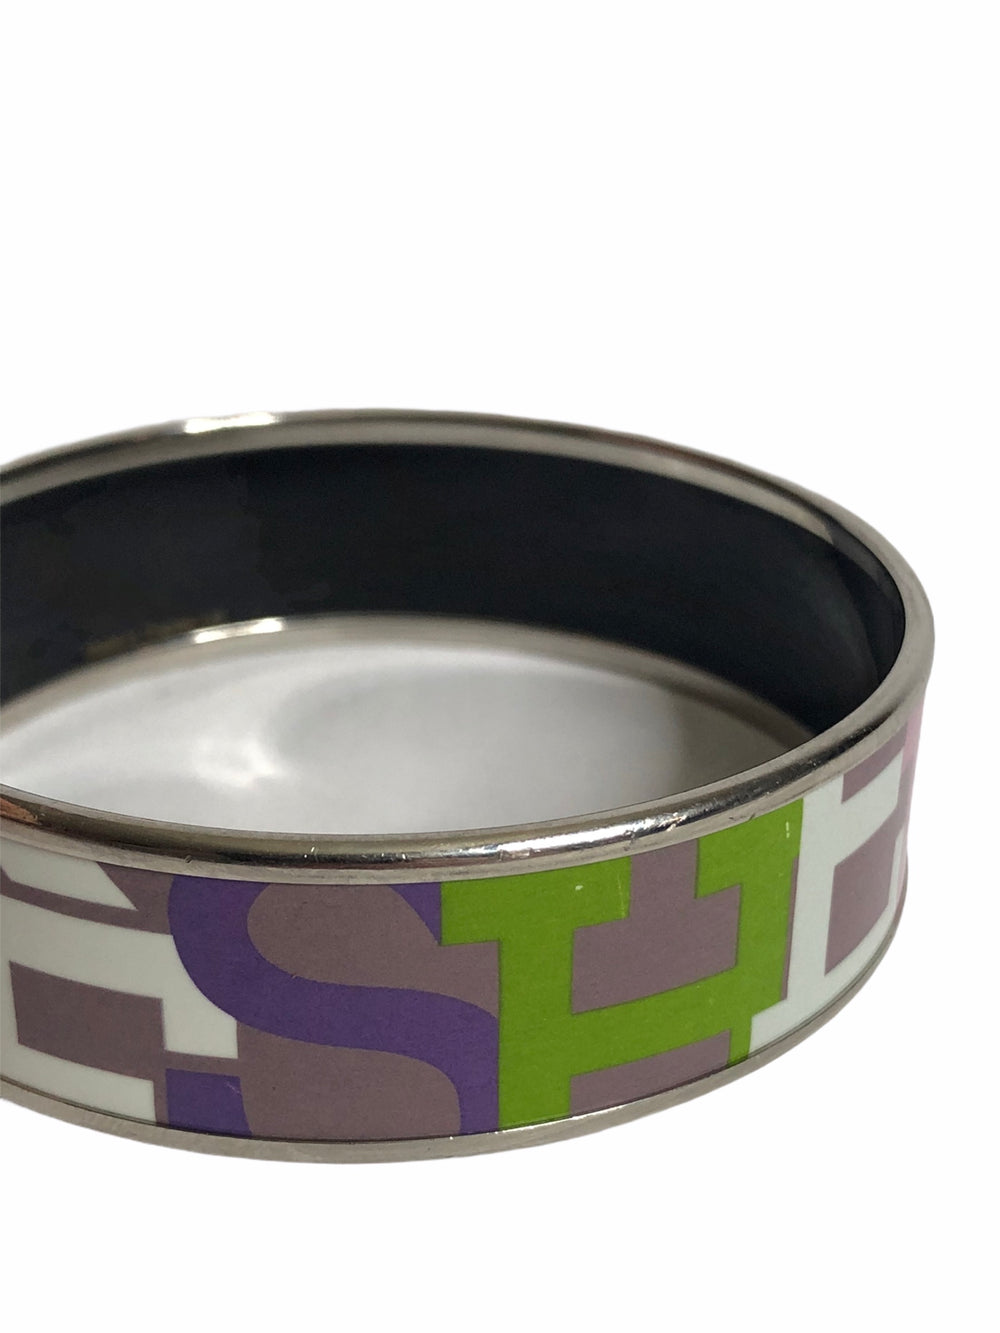 Hermes Enamel Printed Bangle - As Seen on Instagram 19/11/20